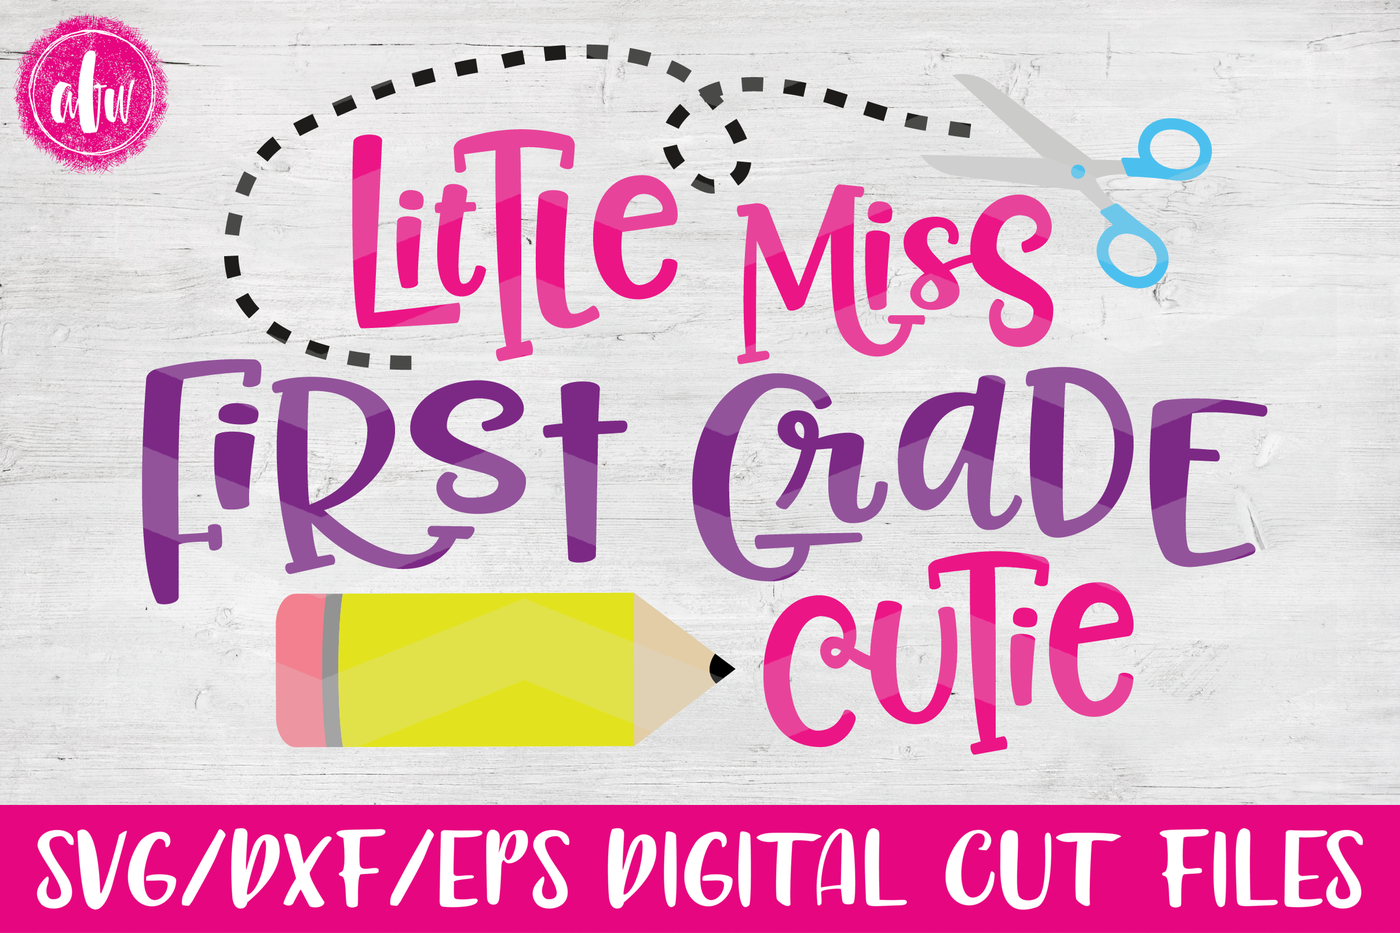 Little Miss First Grade Cutie Svg Dxf Eps Cut File By Afw Designs Thehungryjpeg Com